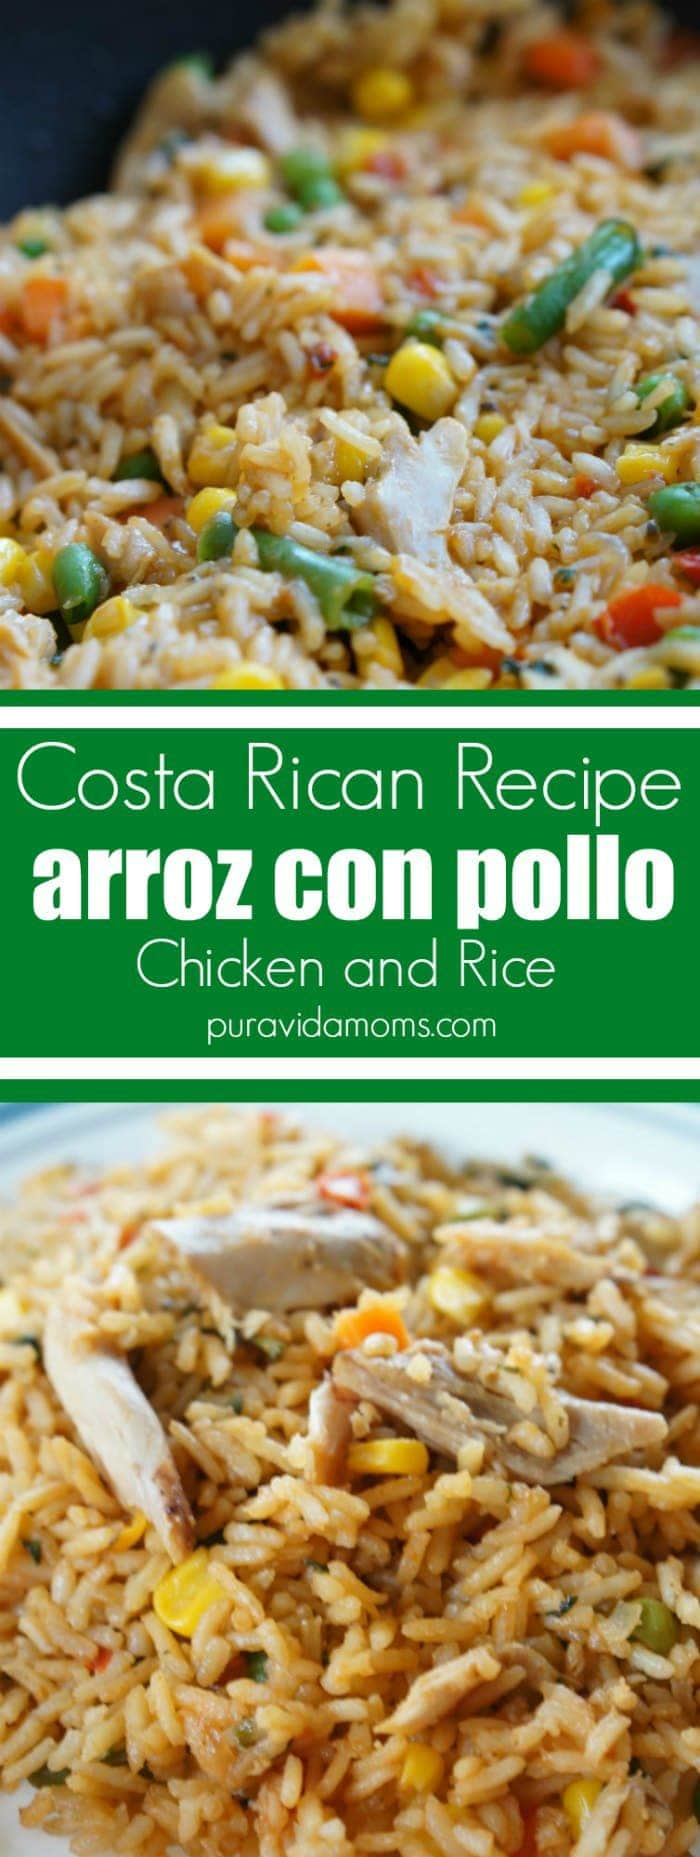 Arroz con pollo rice with chicken easy costa rican recipe pura costa rican arroz con pollo chicken and rice recipe forumfinder Gallery